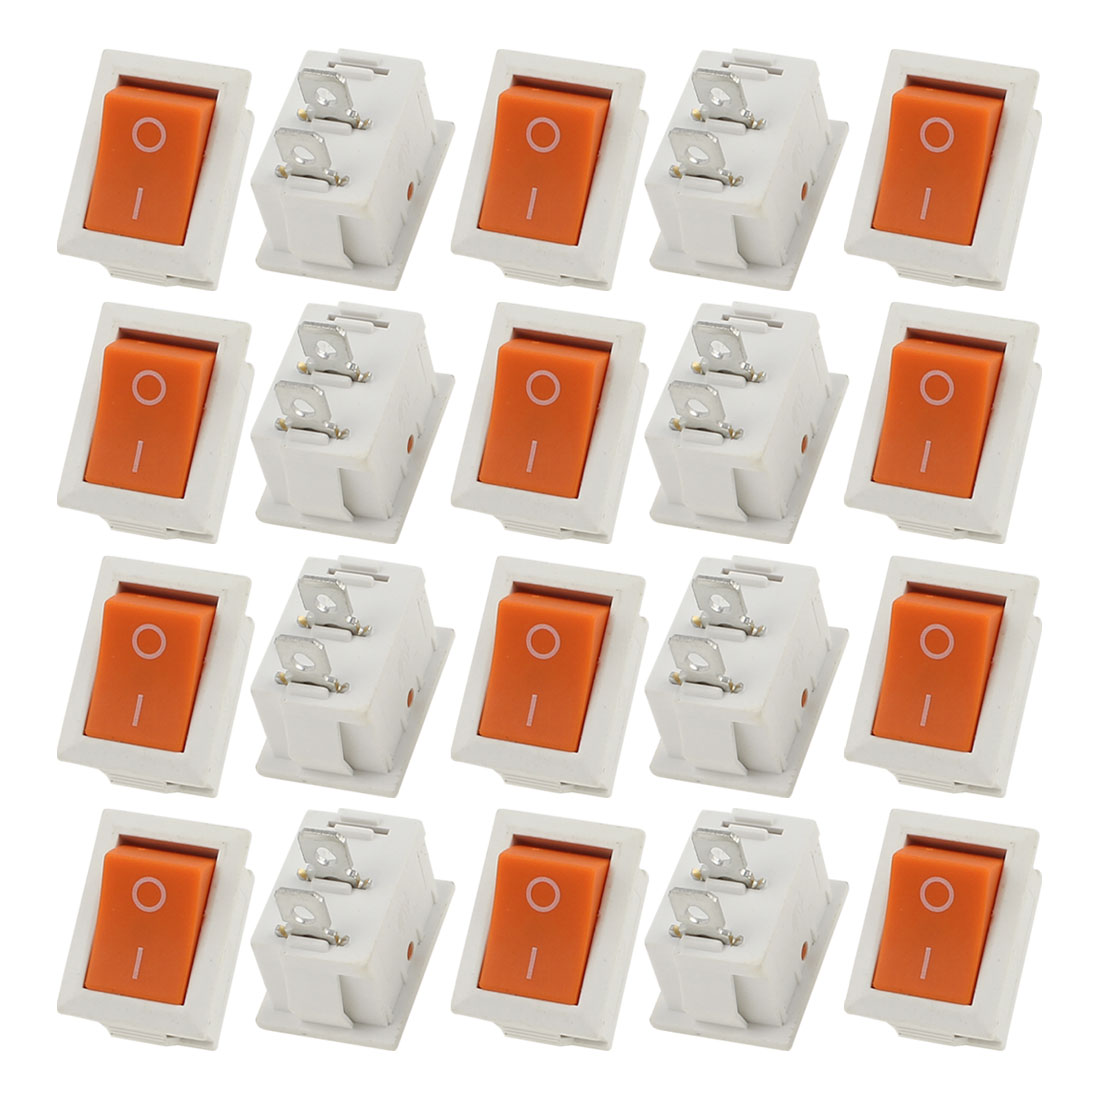 20 Pcs AC 250V/125V 10A/6A ON/OFF 2 Position KCD1 Snap in White Orange Button Boat Rocker Switch